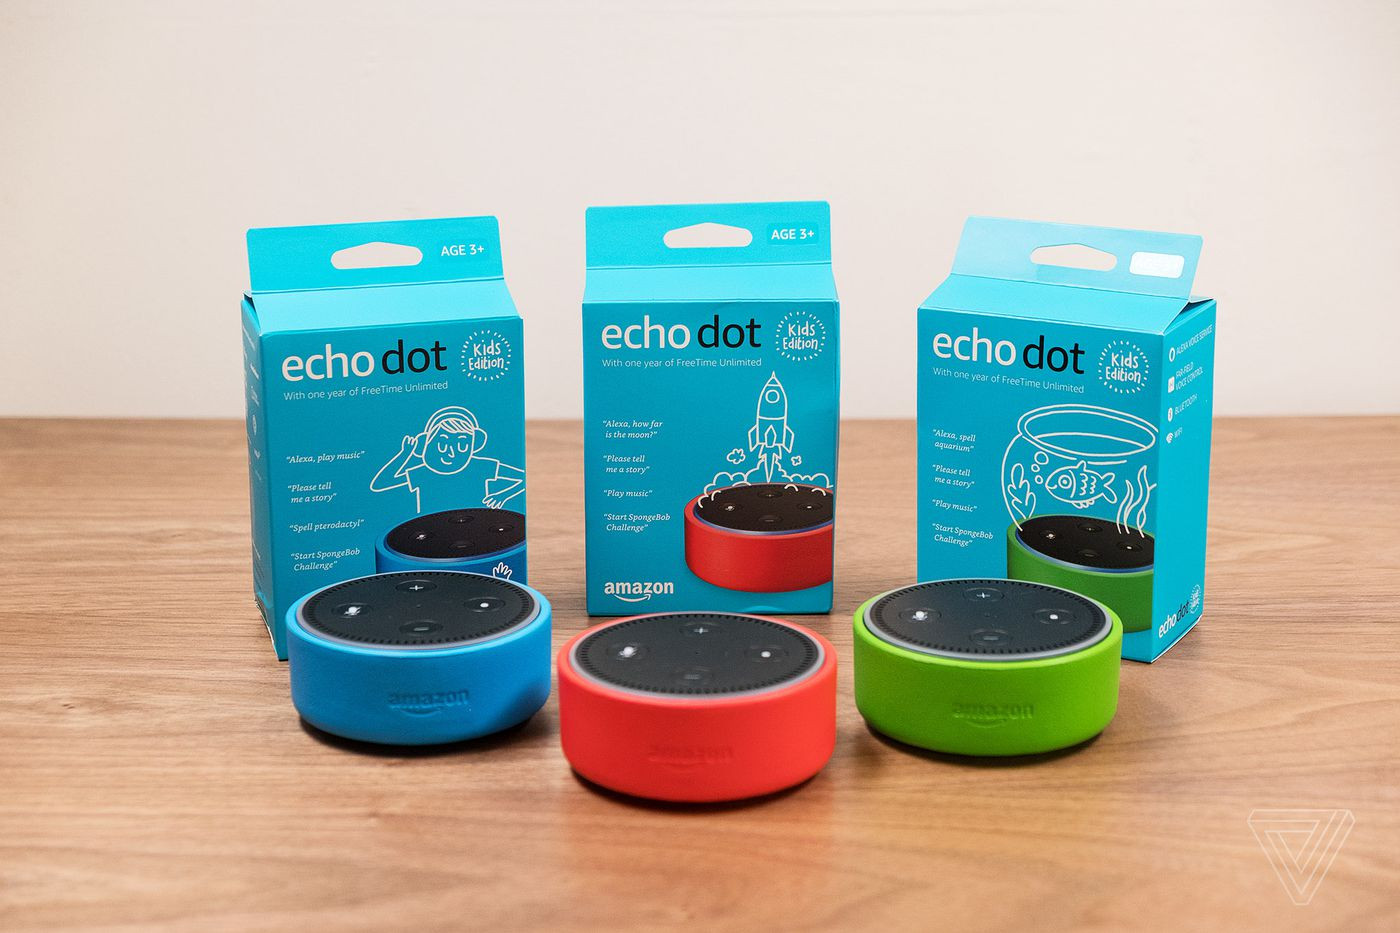 These are probably the best Amazon Echo prices you'll see